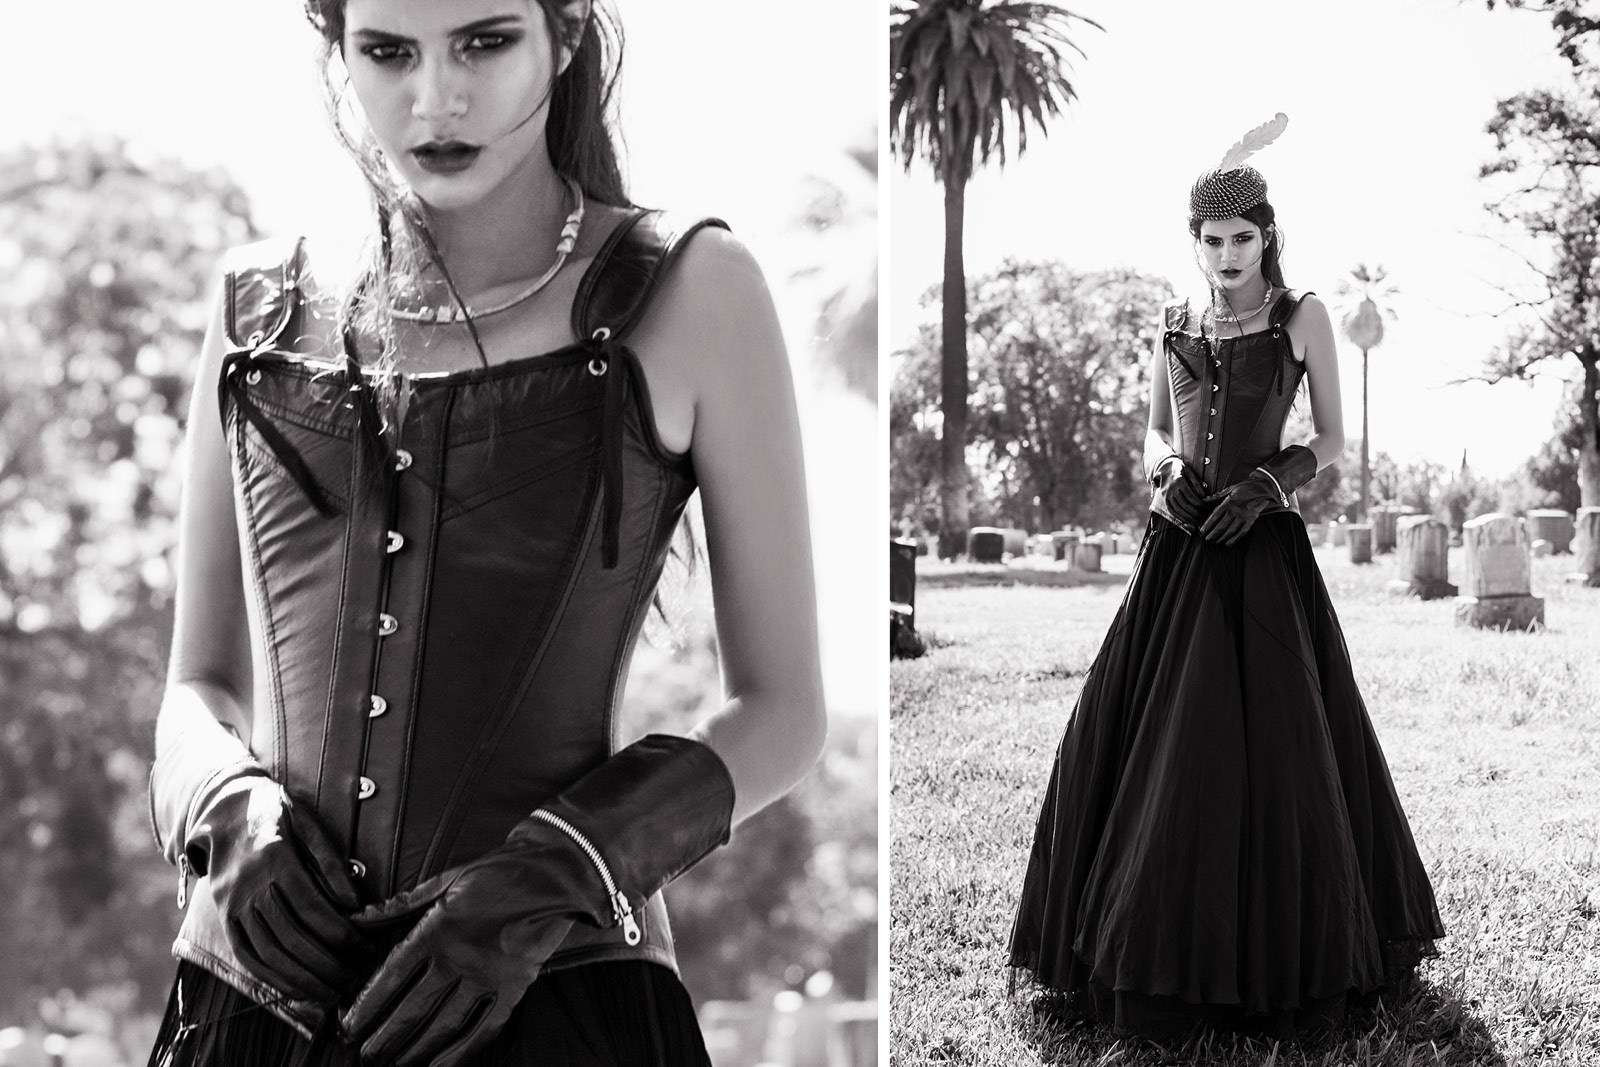 Leather corset LA MAISON DE FASHION / Skirt JANI & KHOSLA / Gloves BRUNO CARLO / Hat LA MAISON DE FASHION / Necklace PUSHMATAaHA